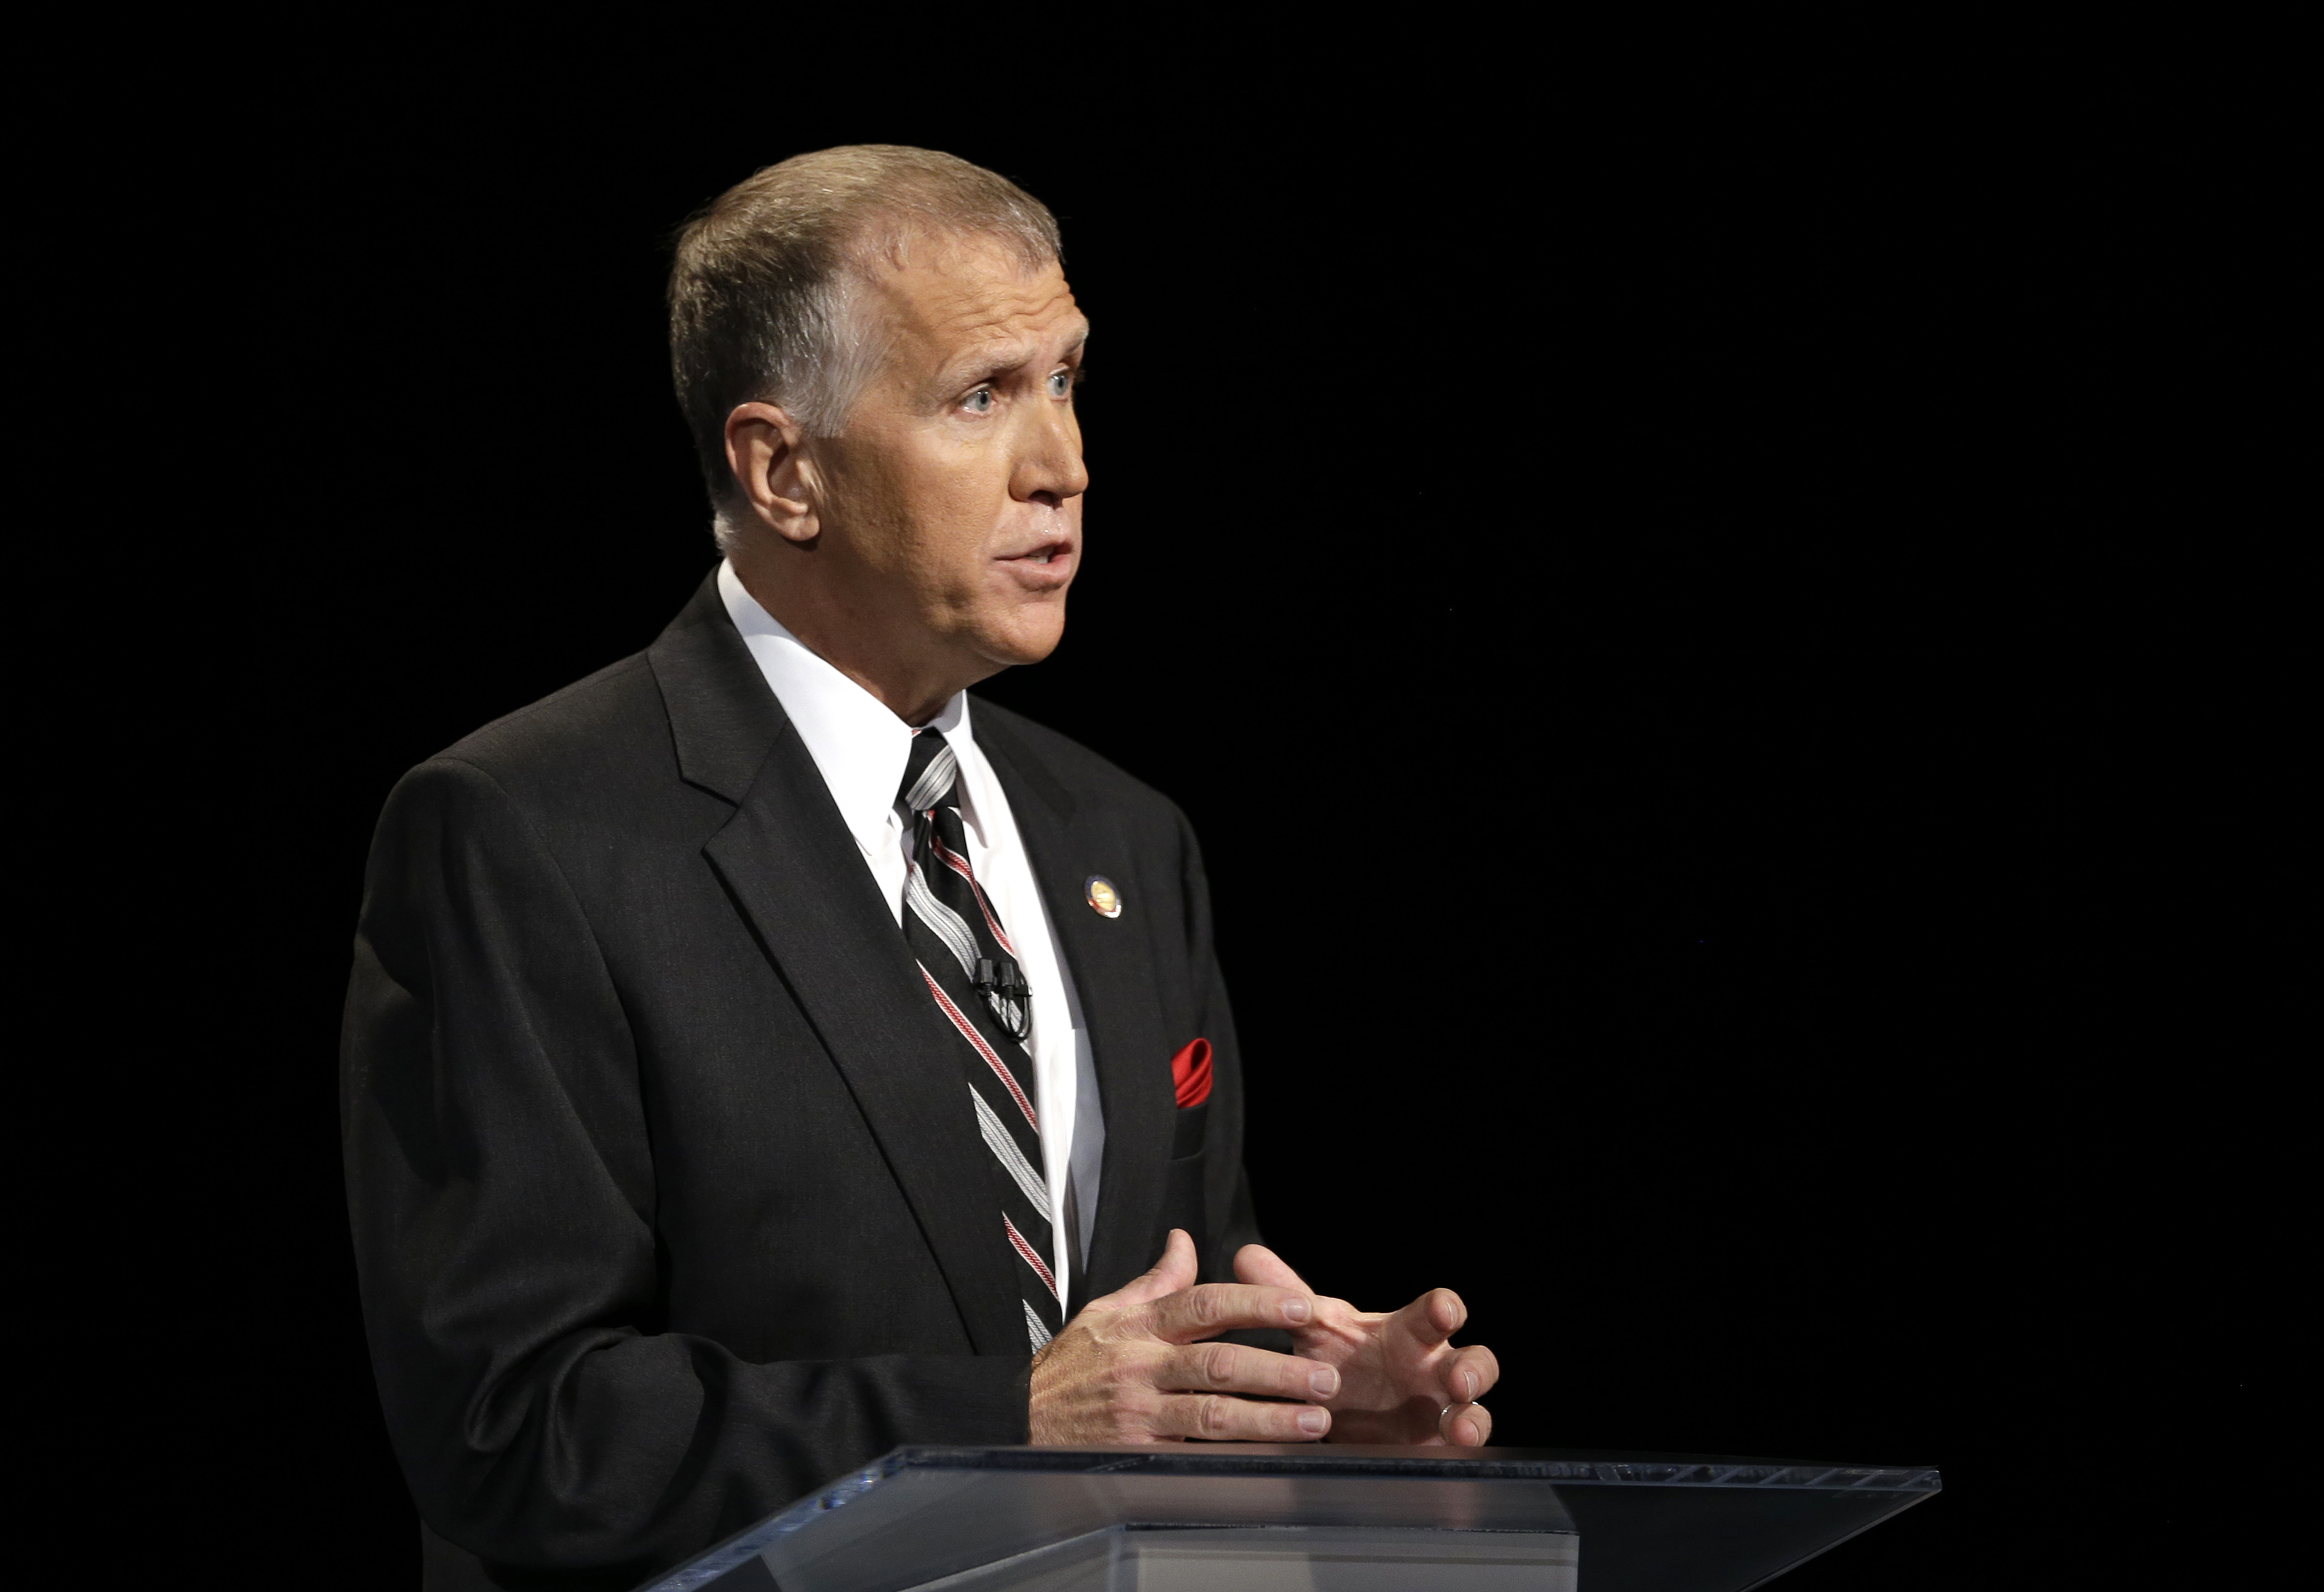 Republican senatorial candidate Thom Tillis speaks during a live televised debate at UNC-TV studios in Research Triangle Park, N.C., Monday, April 28, 2014.